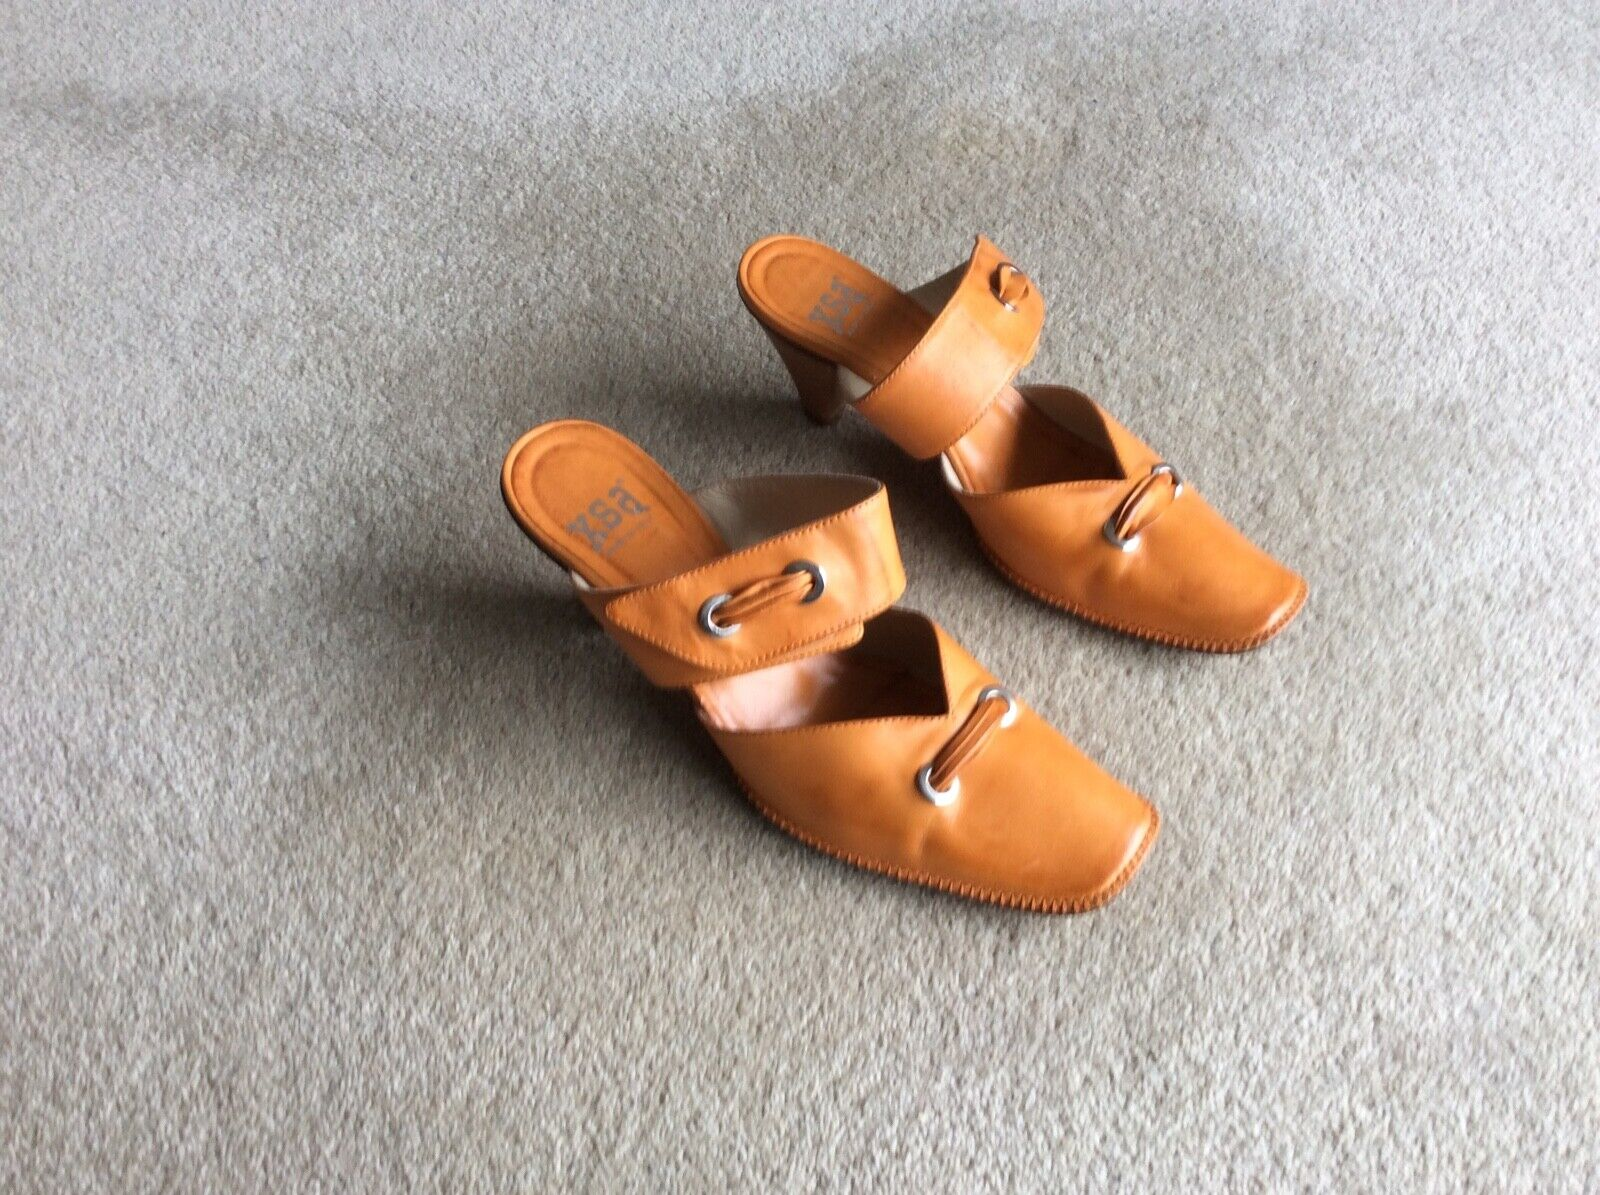 Women's, XSA, Italian, orange all leather, cross strap, medium heel, mules (6.5)